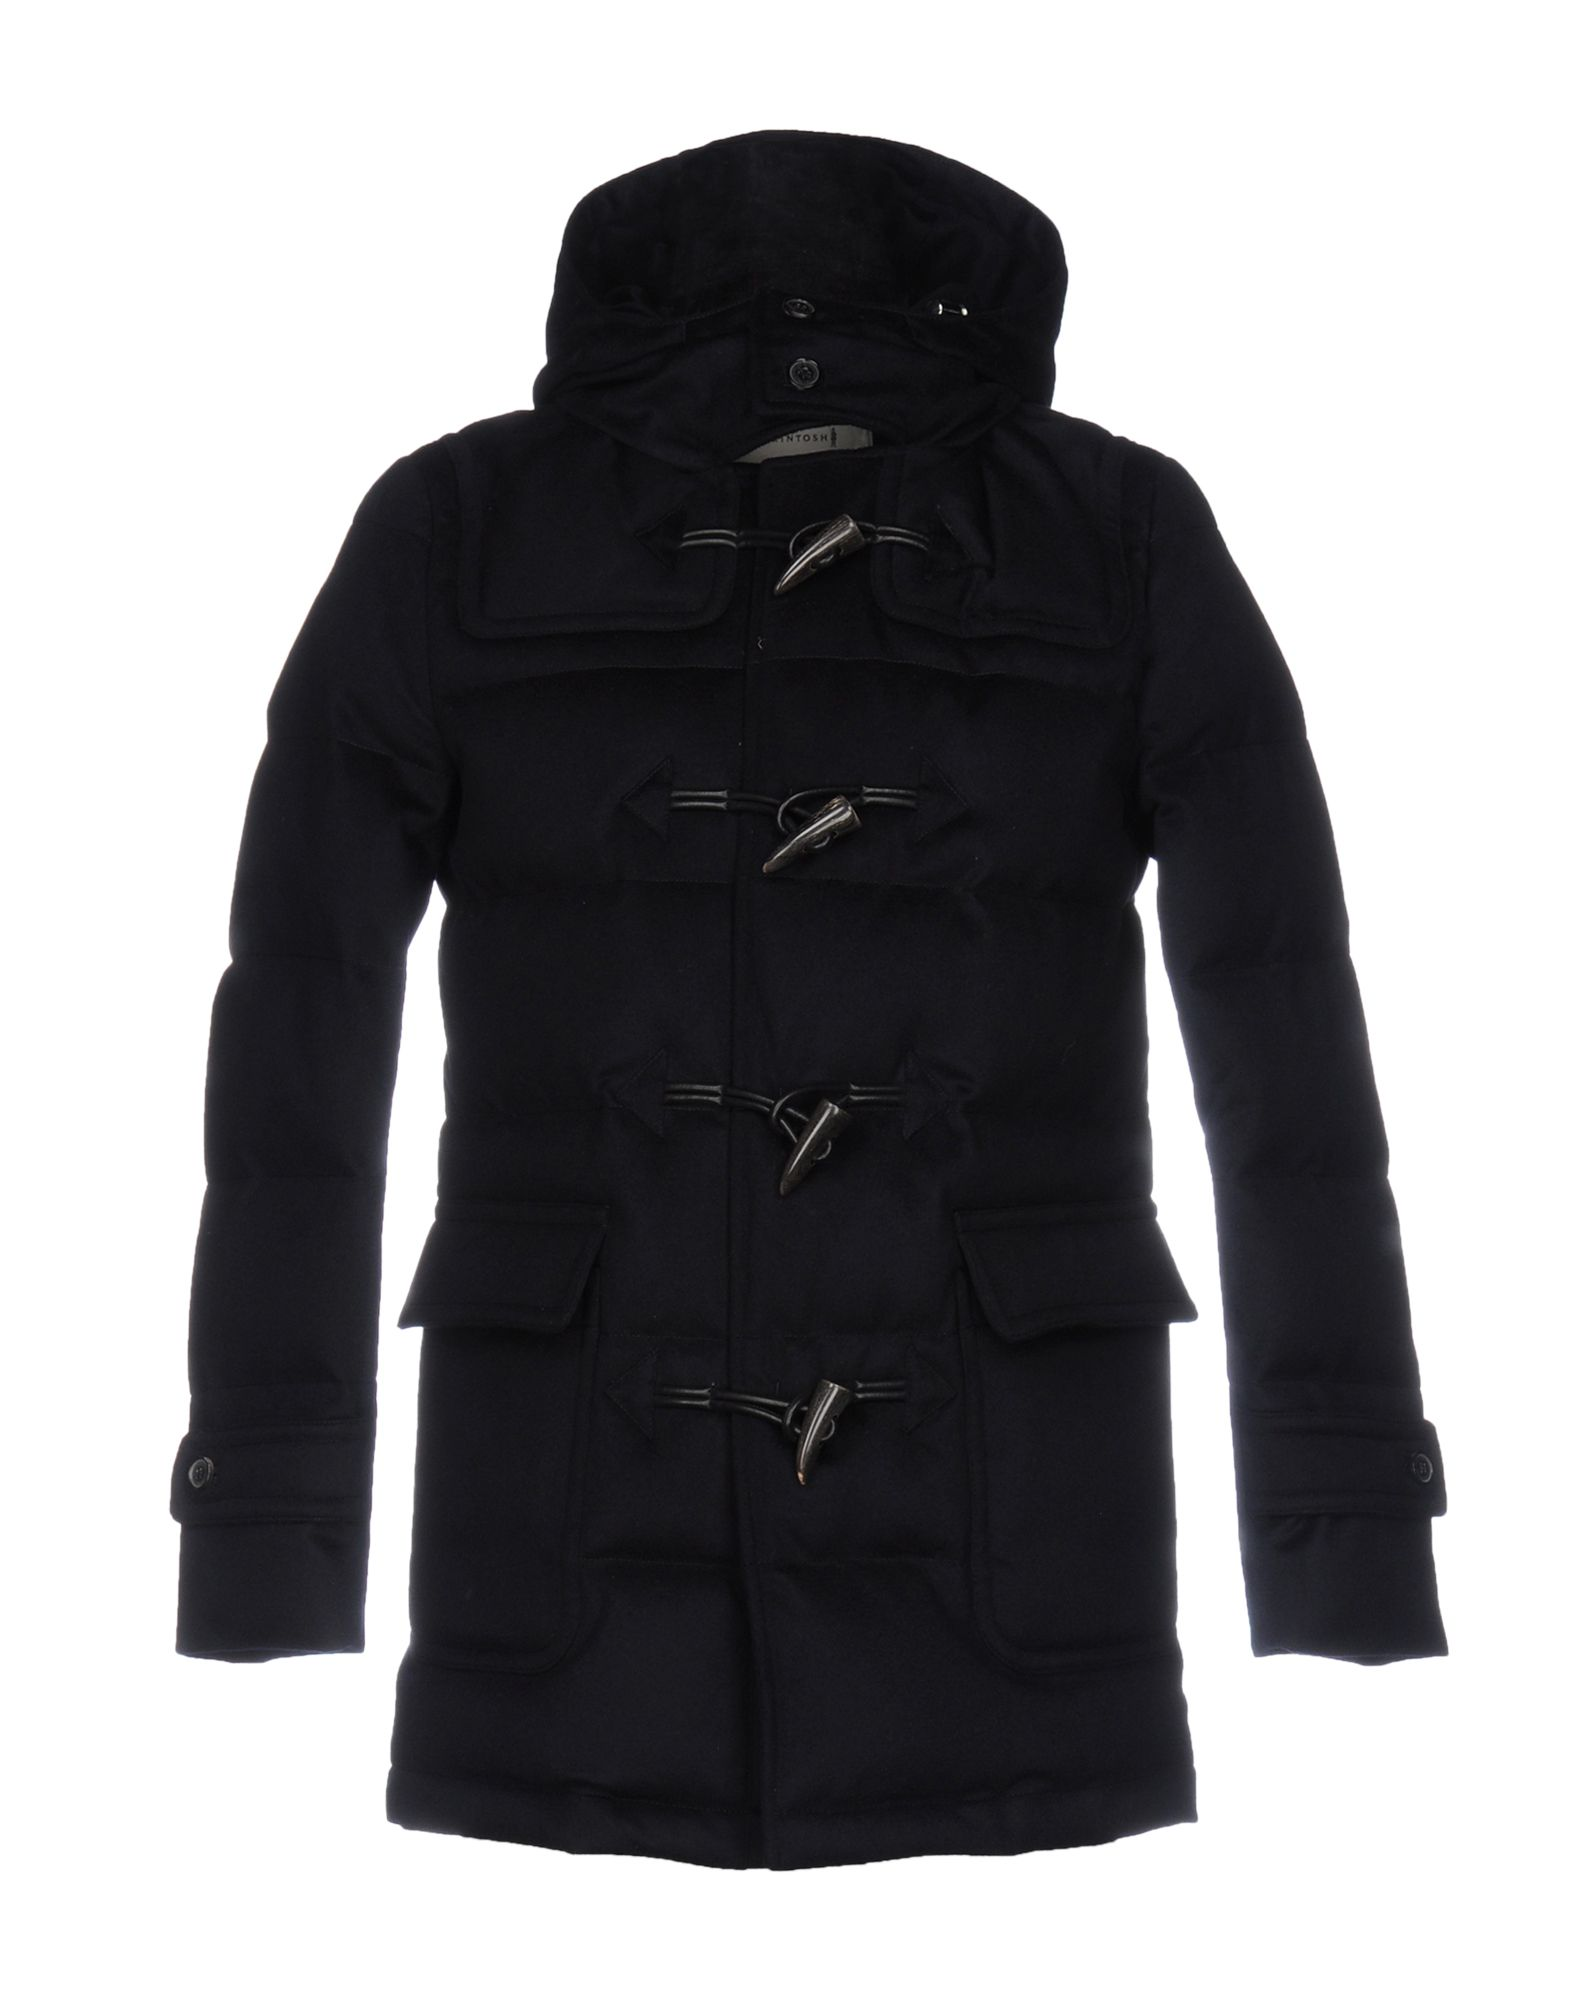 Mackintosh Duffle Coats - Mackintosh Men - YOOX United States